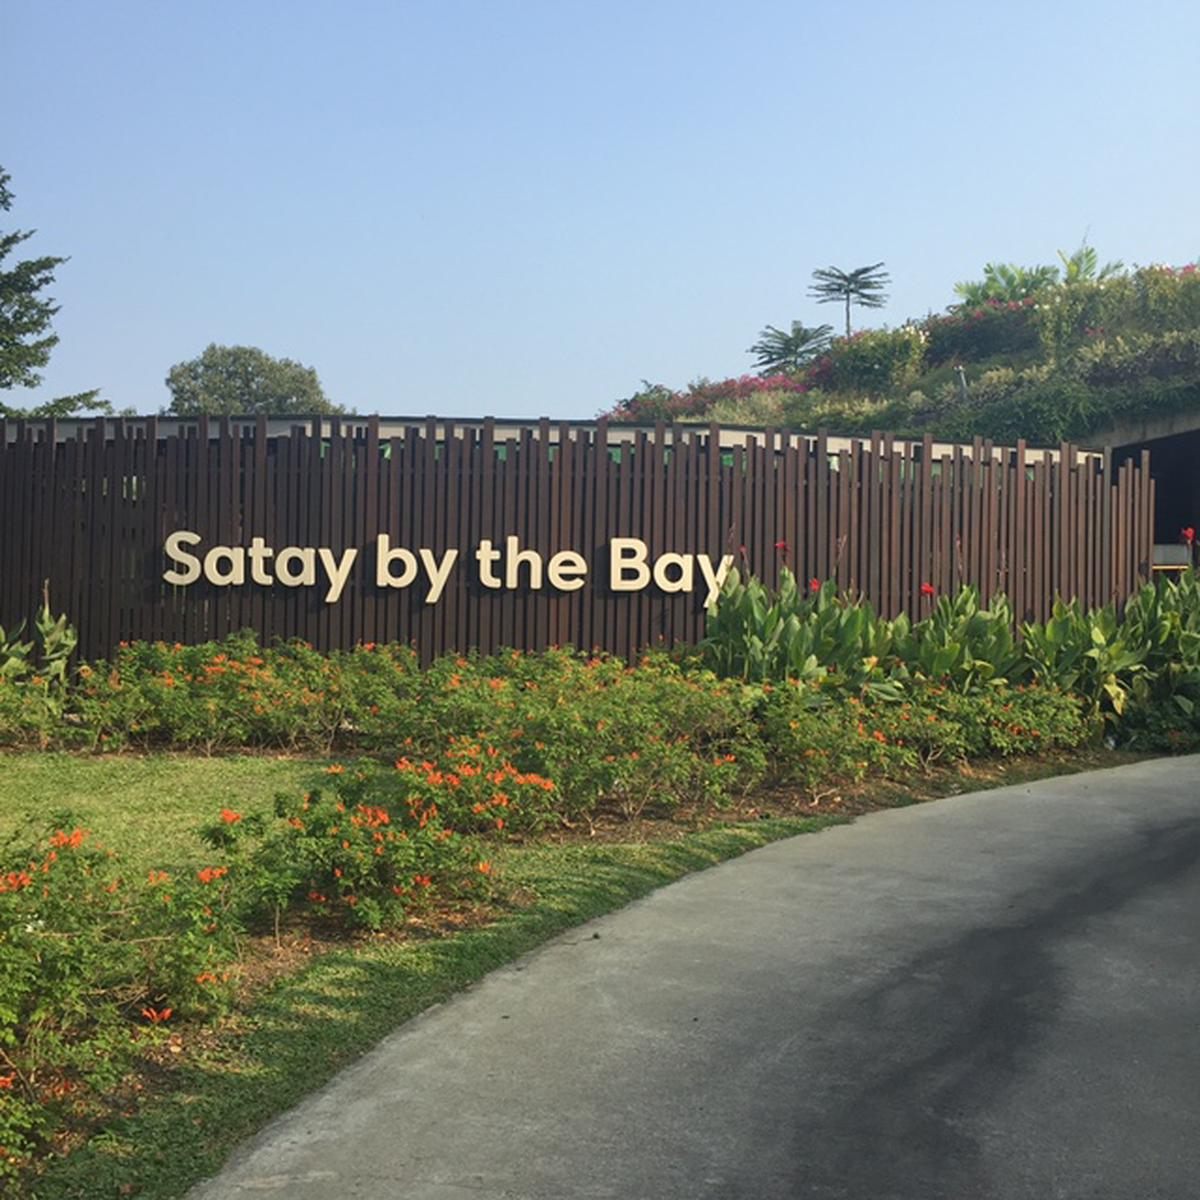 Satay By The Bay Discounted Cash Vouchers in Gardens By The